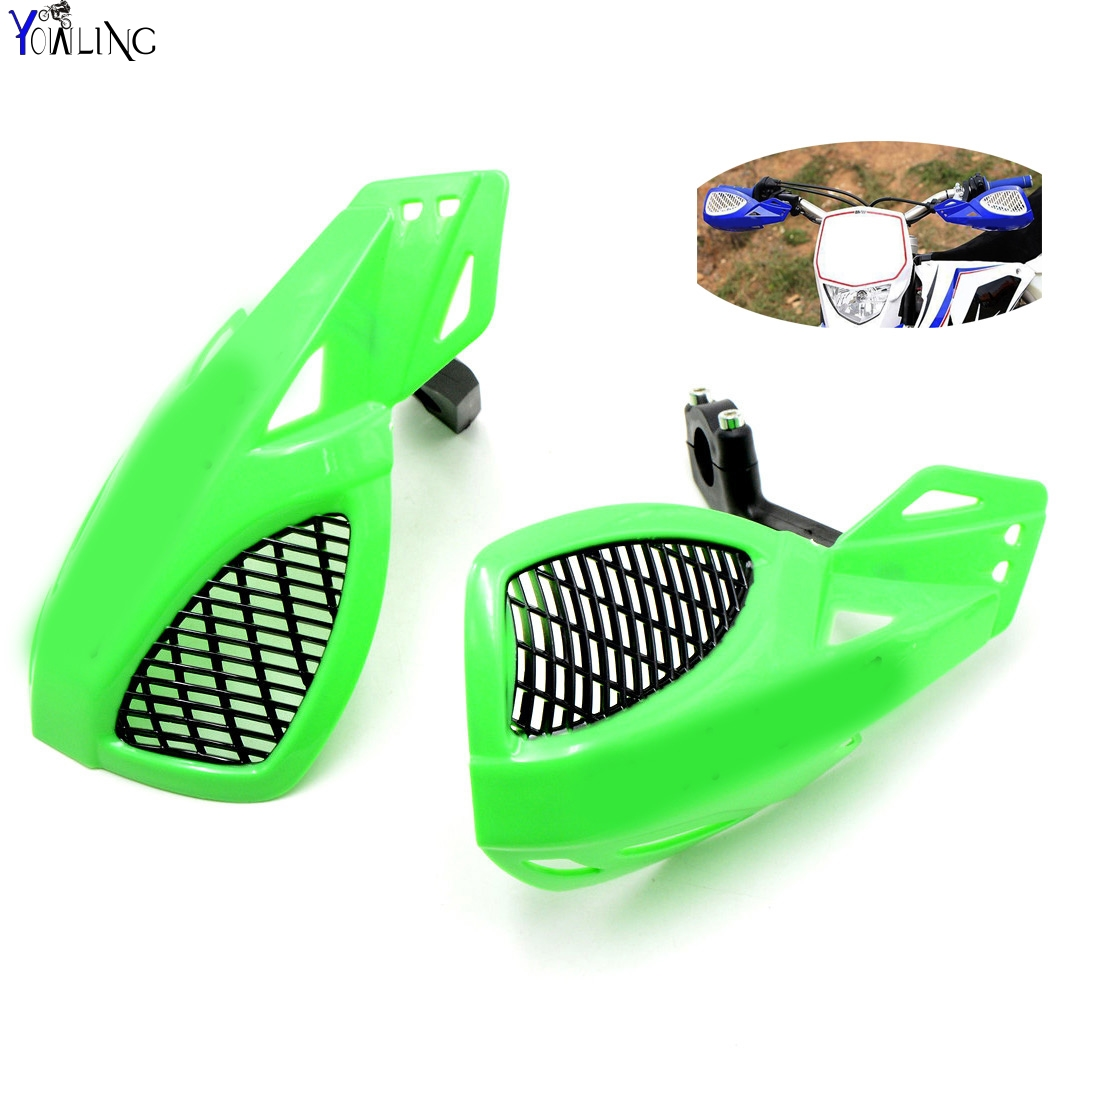 Dirt bike Motorcycle 7/8''22mm handlebar brake hand guard For Kawasaki KX KLX KFX KDX 65 80 85 125 250 250 450 450 150 F/R/S dirt bike motorcycle 7 8 22mm handlebar brake hand guard for yamaha yz250x yz426f yz450f yz450fx yz80 yz85